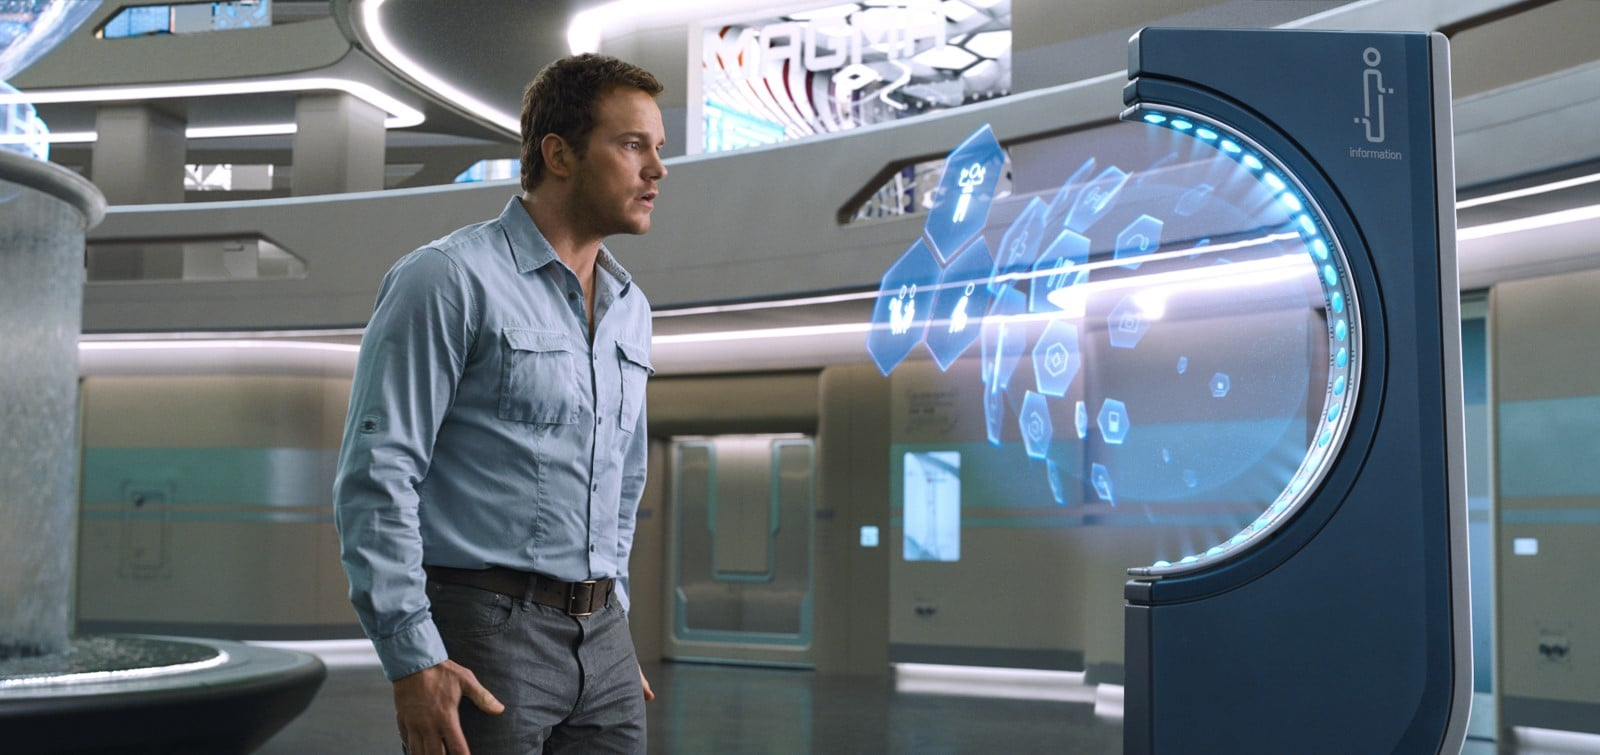 Passengers wraps sadness, beauty and dread into one cautionary tale